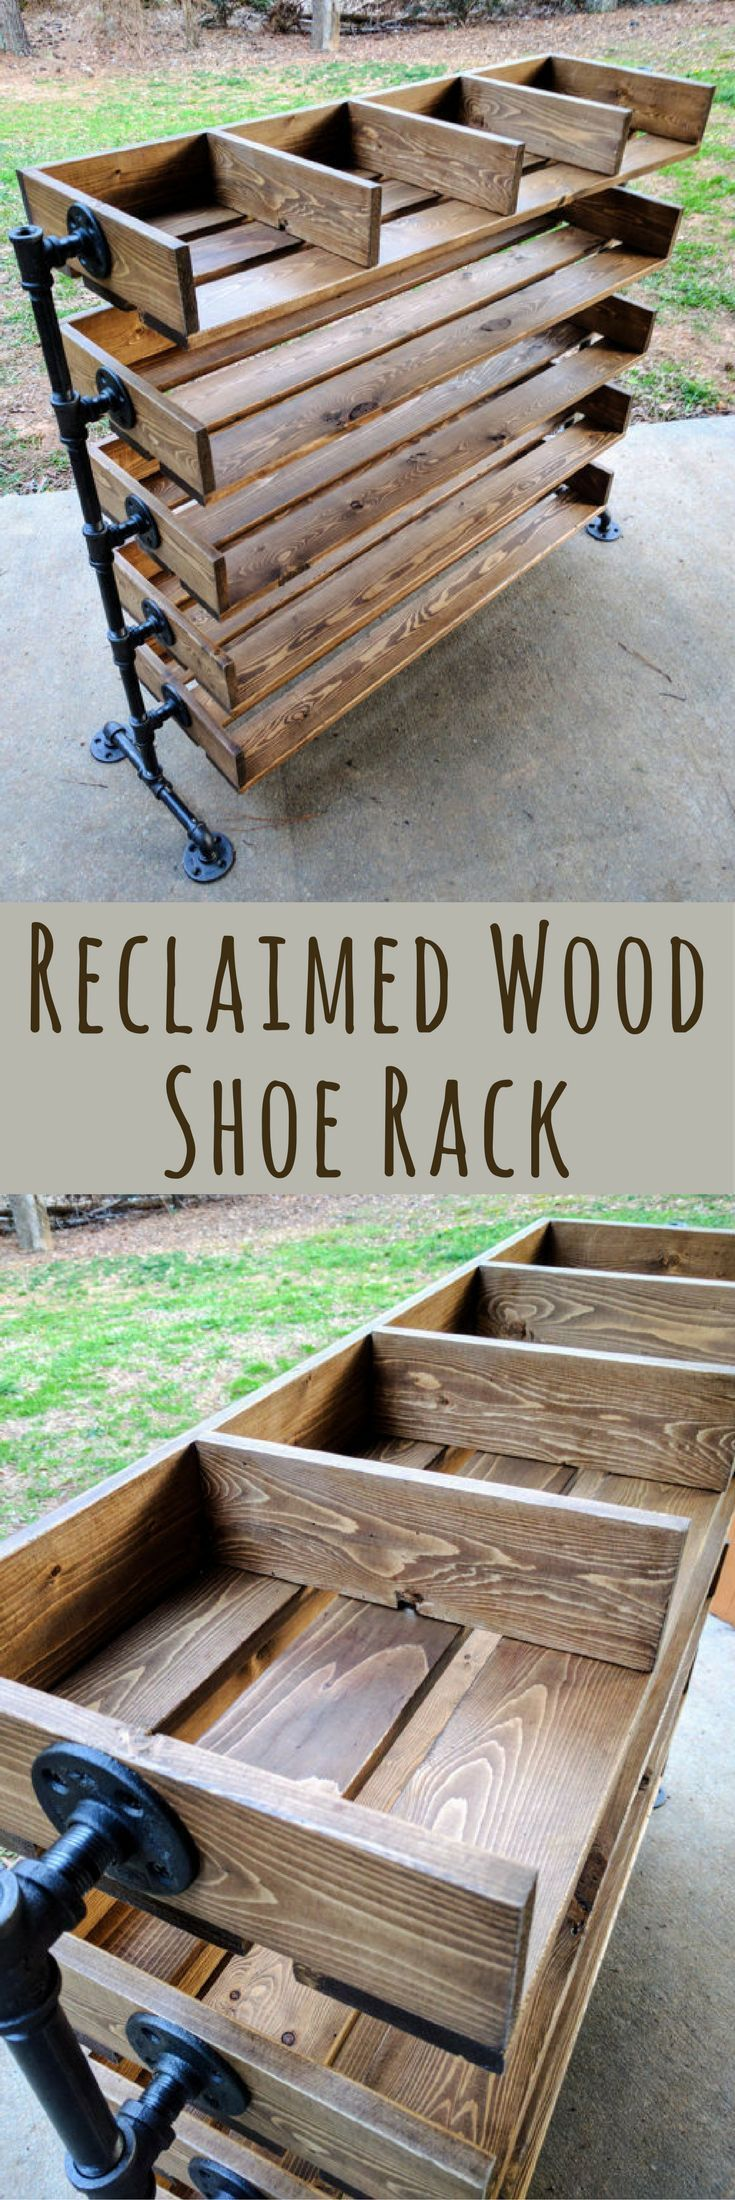 I LOVE the look of these handmade shoe racks! Handmade Reclaimed Cubbies, Reclaimed Wood Shoe Rack, Wooden Shoe Stand, Fixer Upper Decor, Rustic Home Interiors, Rustic Shoe Rack, Closet Organization Ideas, Organizer with Steel Pipe Stand Legs, Housewarming Gift Ideas, Birthday Gift Ideas, Closet Renovation, Christmas Gifts Ideas, Home Storage Solutions #affiliatelink #closetorganizer